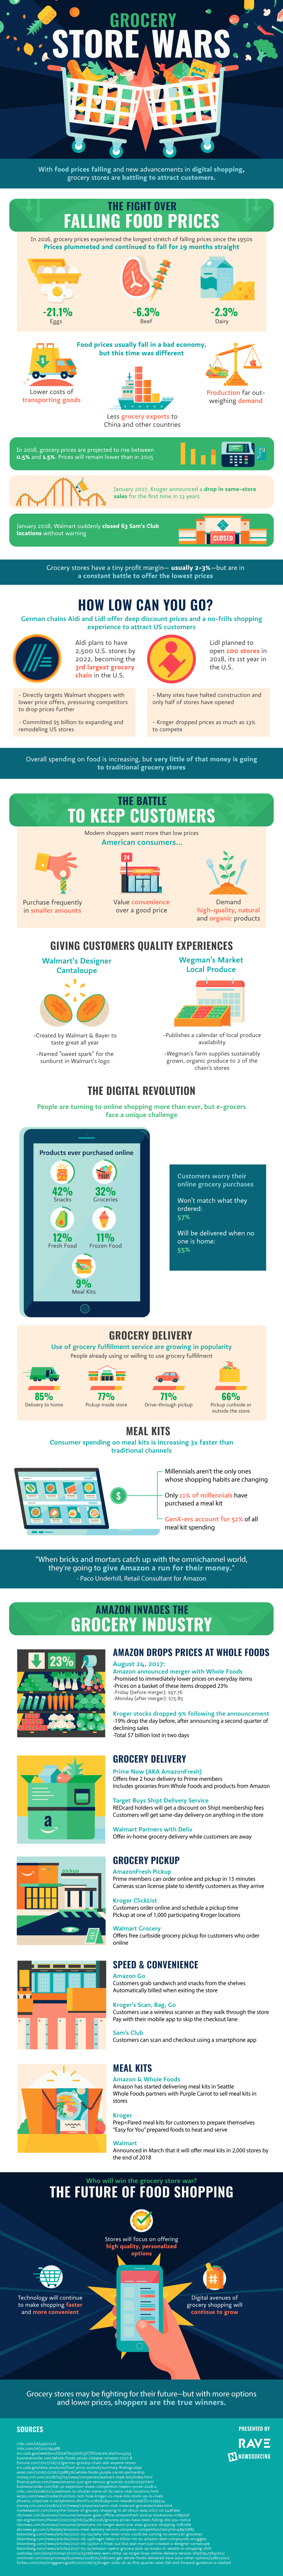 The Grocery Store Wars Infographic